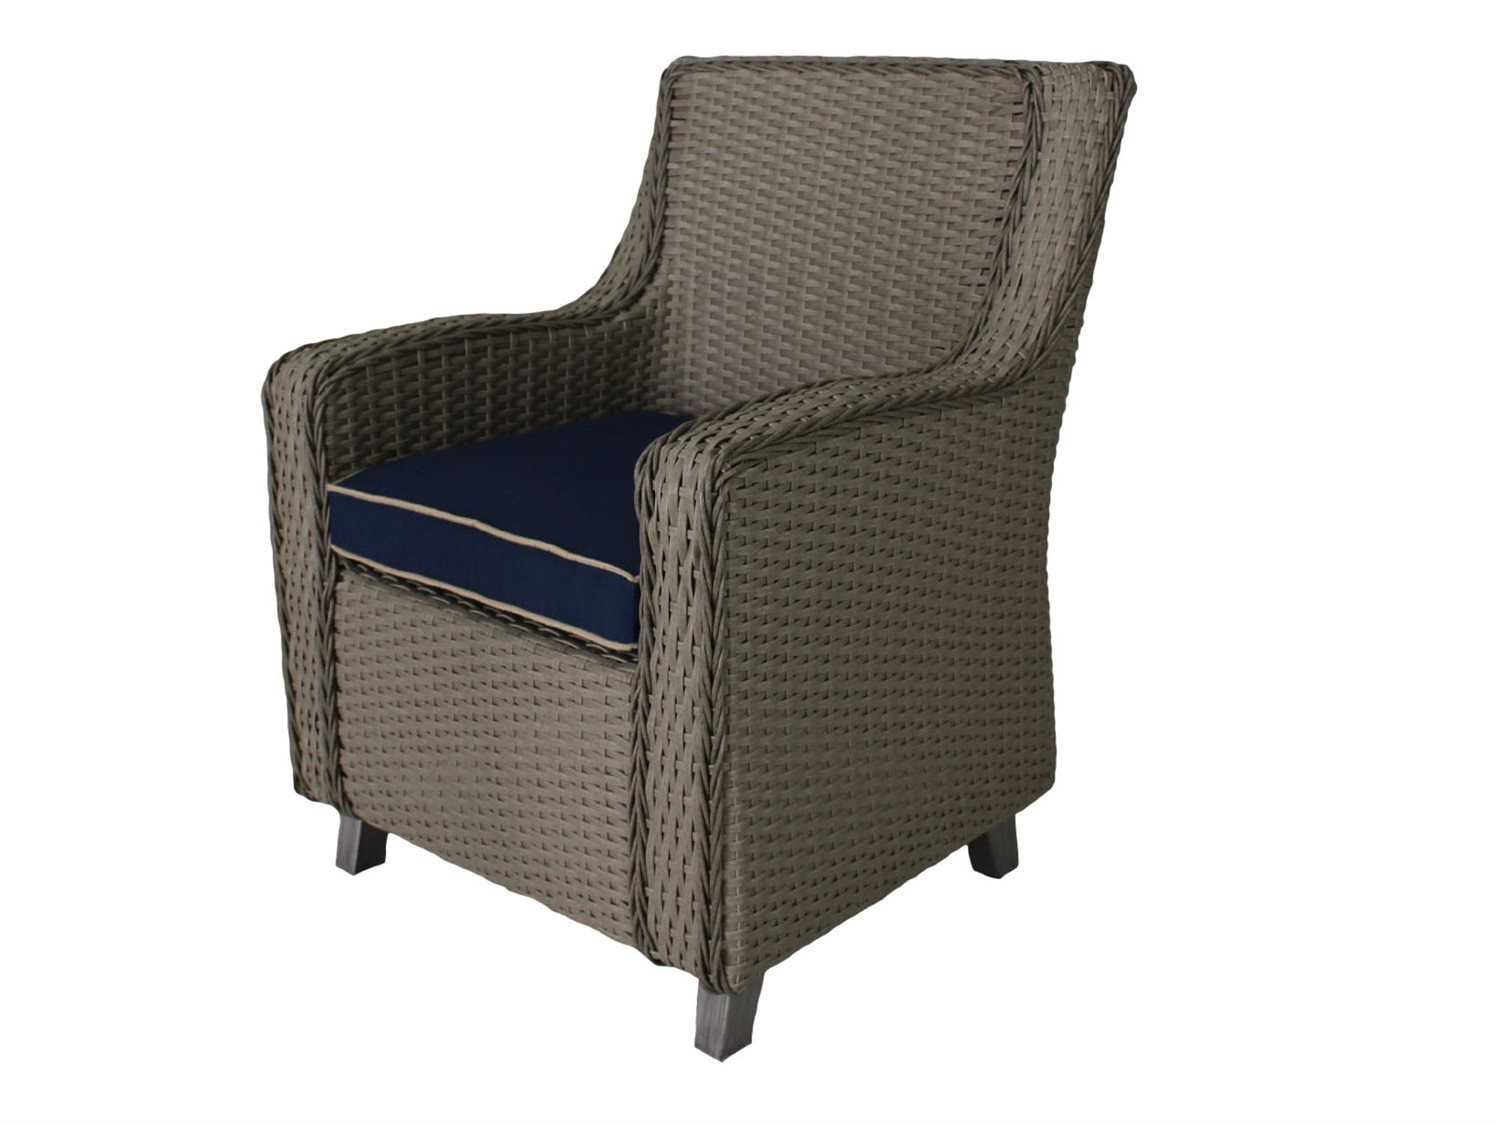 Suncoast Haven Wicker Dining Chair